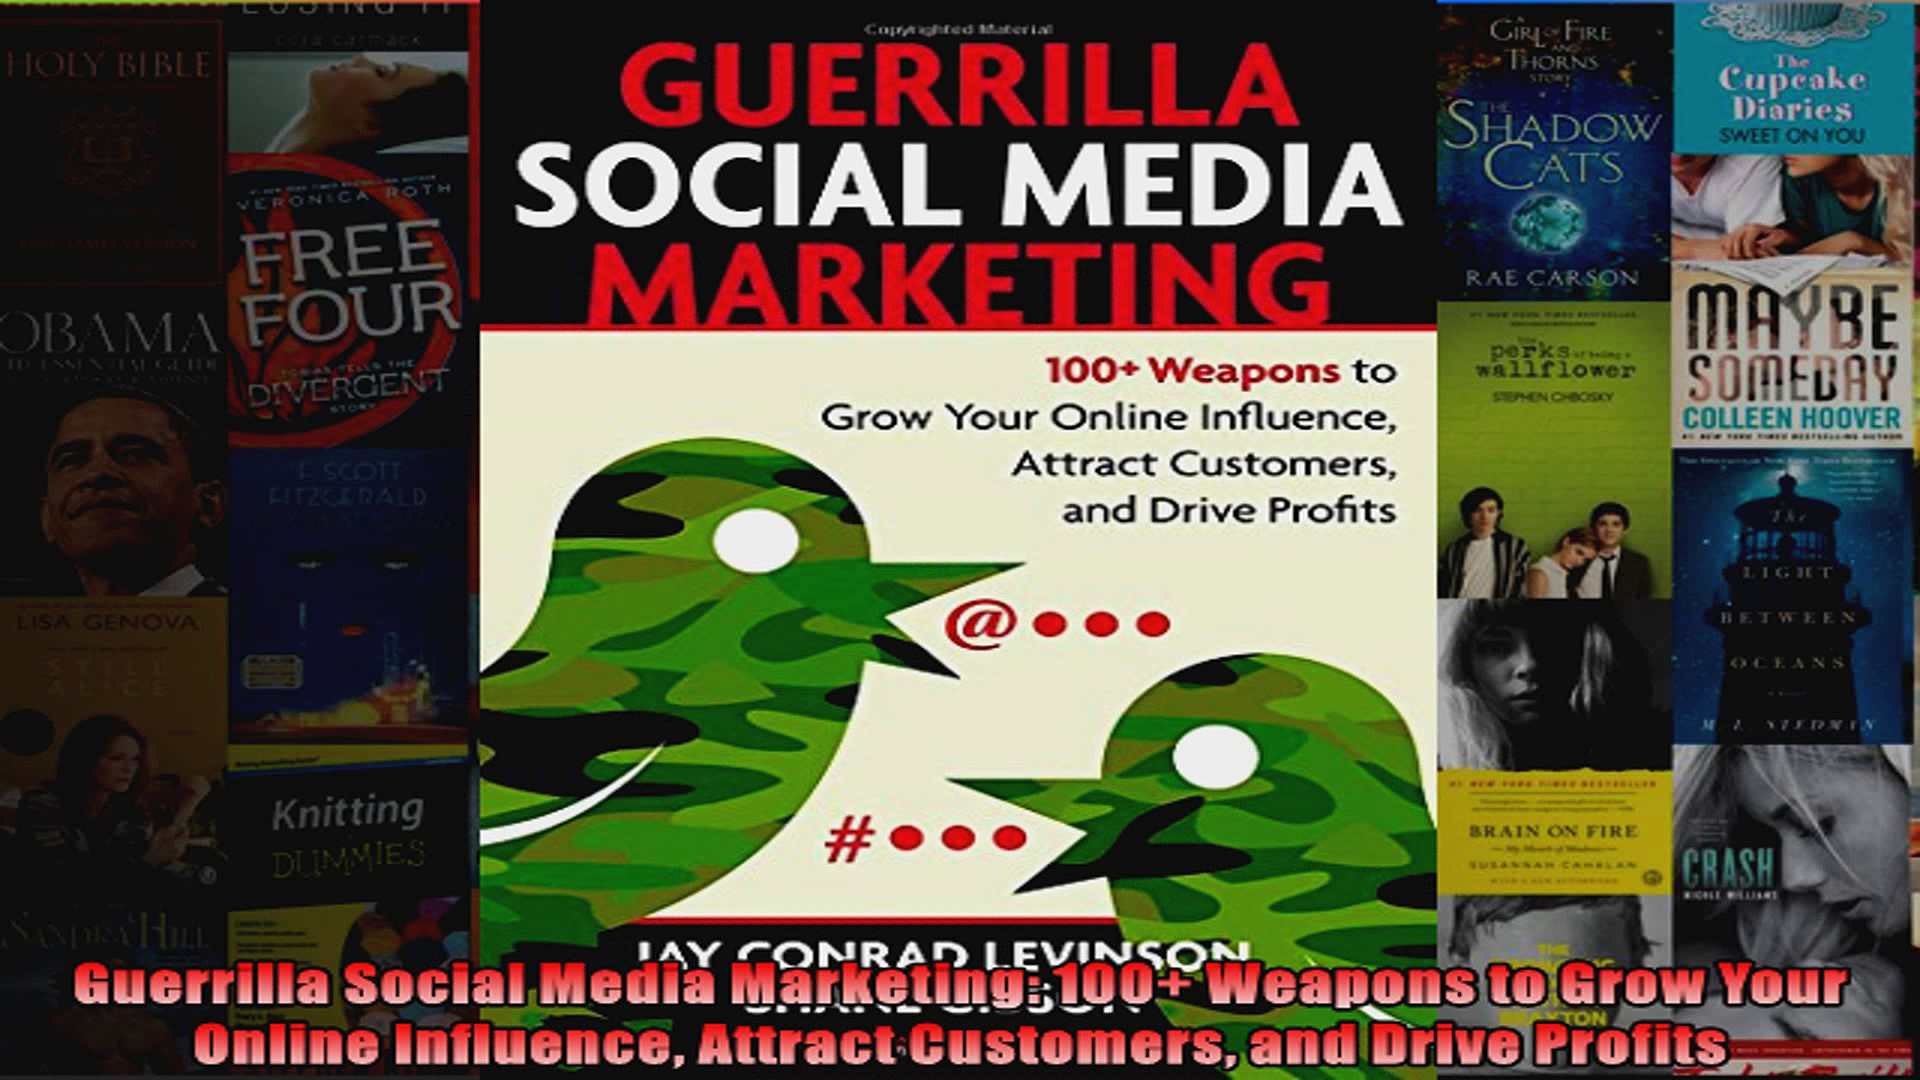 Guerrilla Social Media Marketing 100 Weapons to Grow Your Online Influence Attract